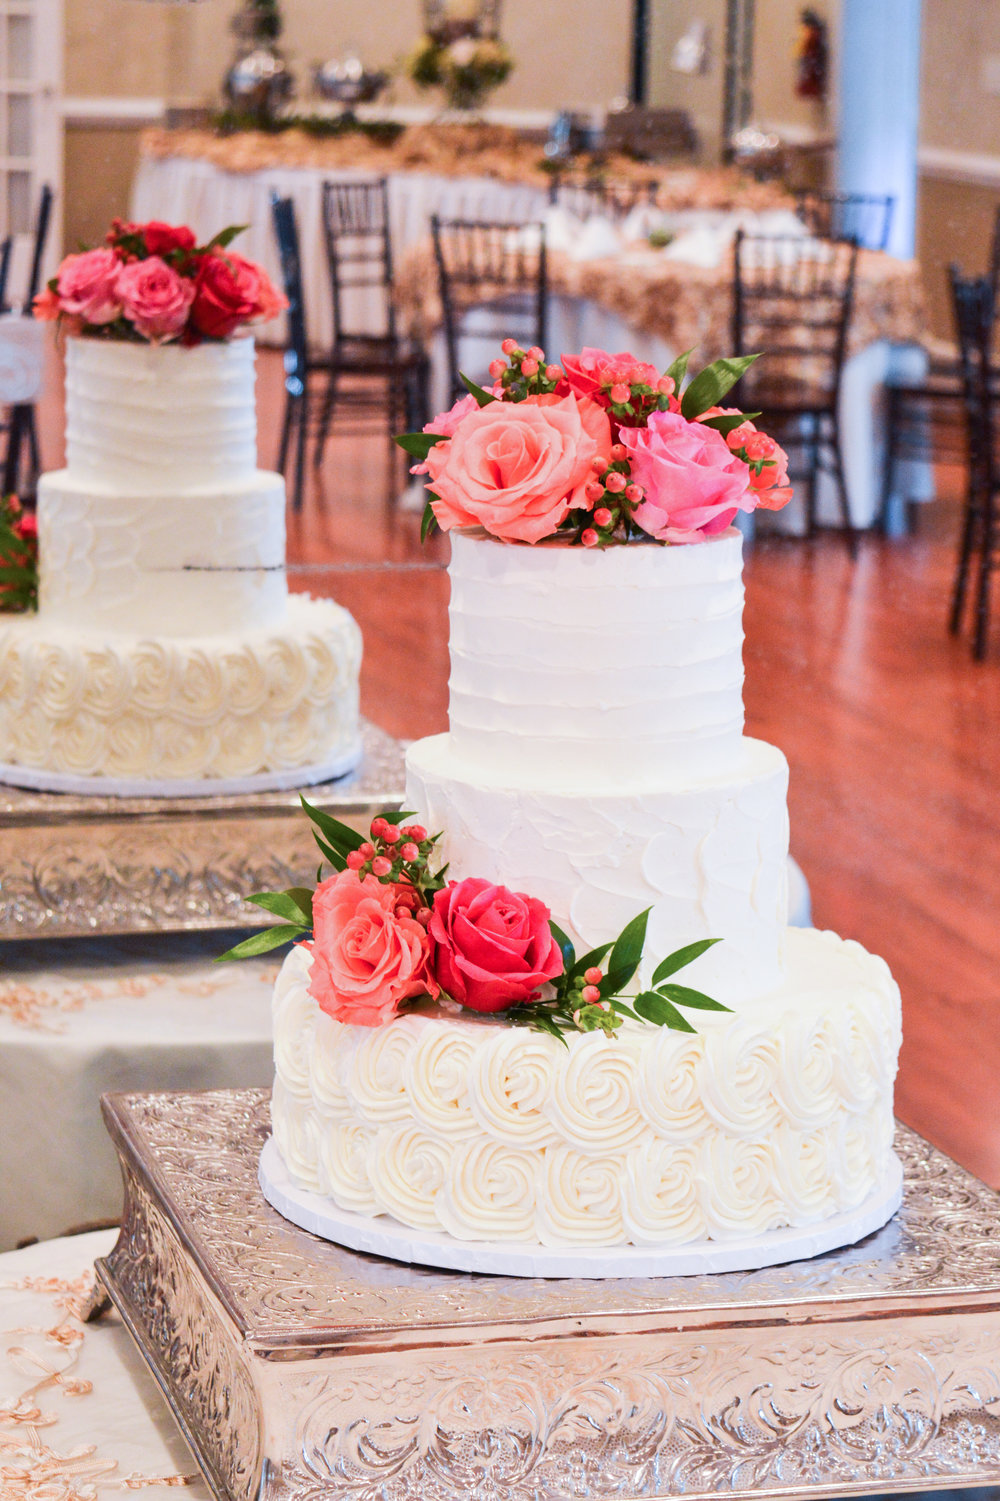 Rosette Wedding Cake w Pink Roses 2_edited.jpg